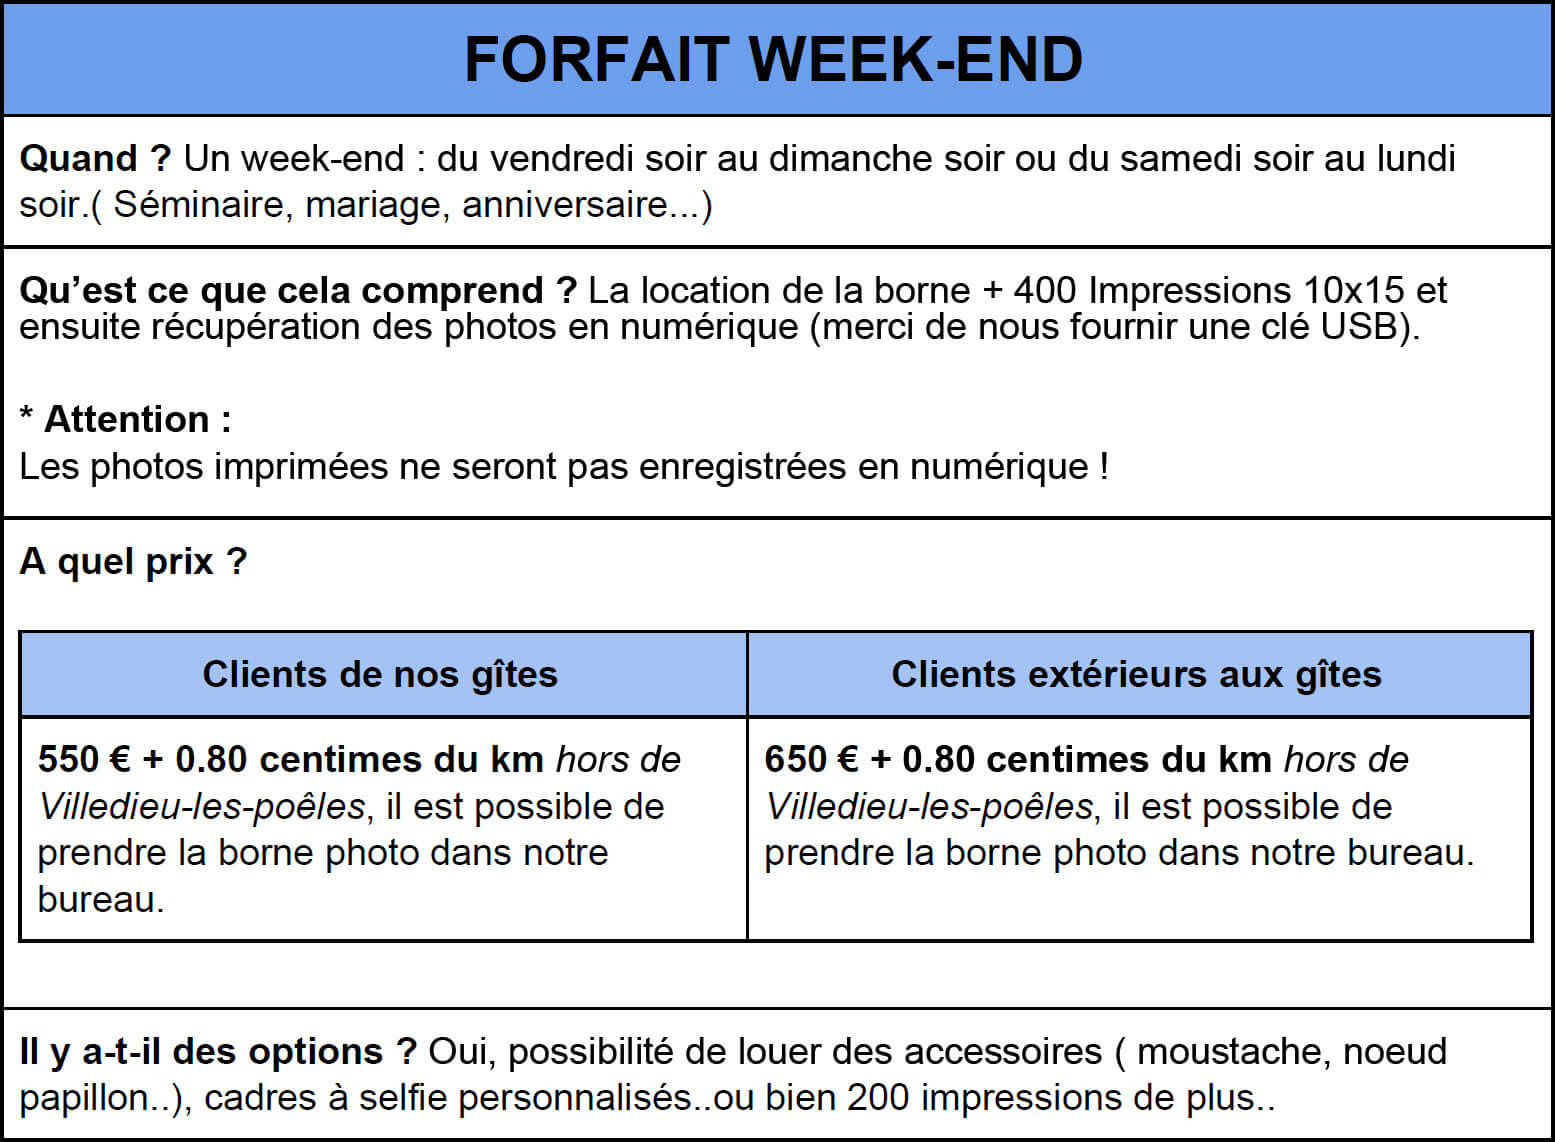 Forfait week end Photobooth2 - Borne Photo Selfie - Location de Gite La Clef Decamp - Laclefdecamp.fr